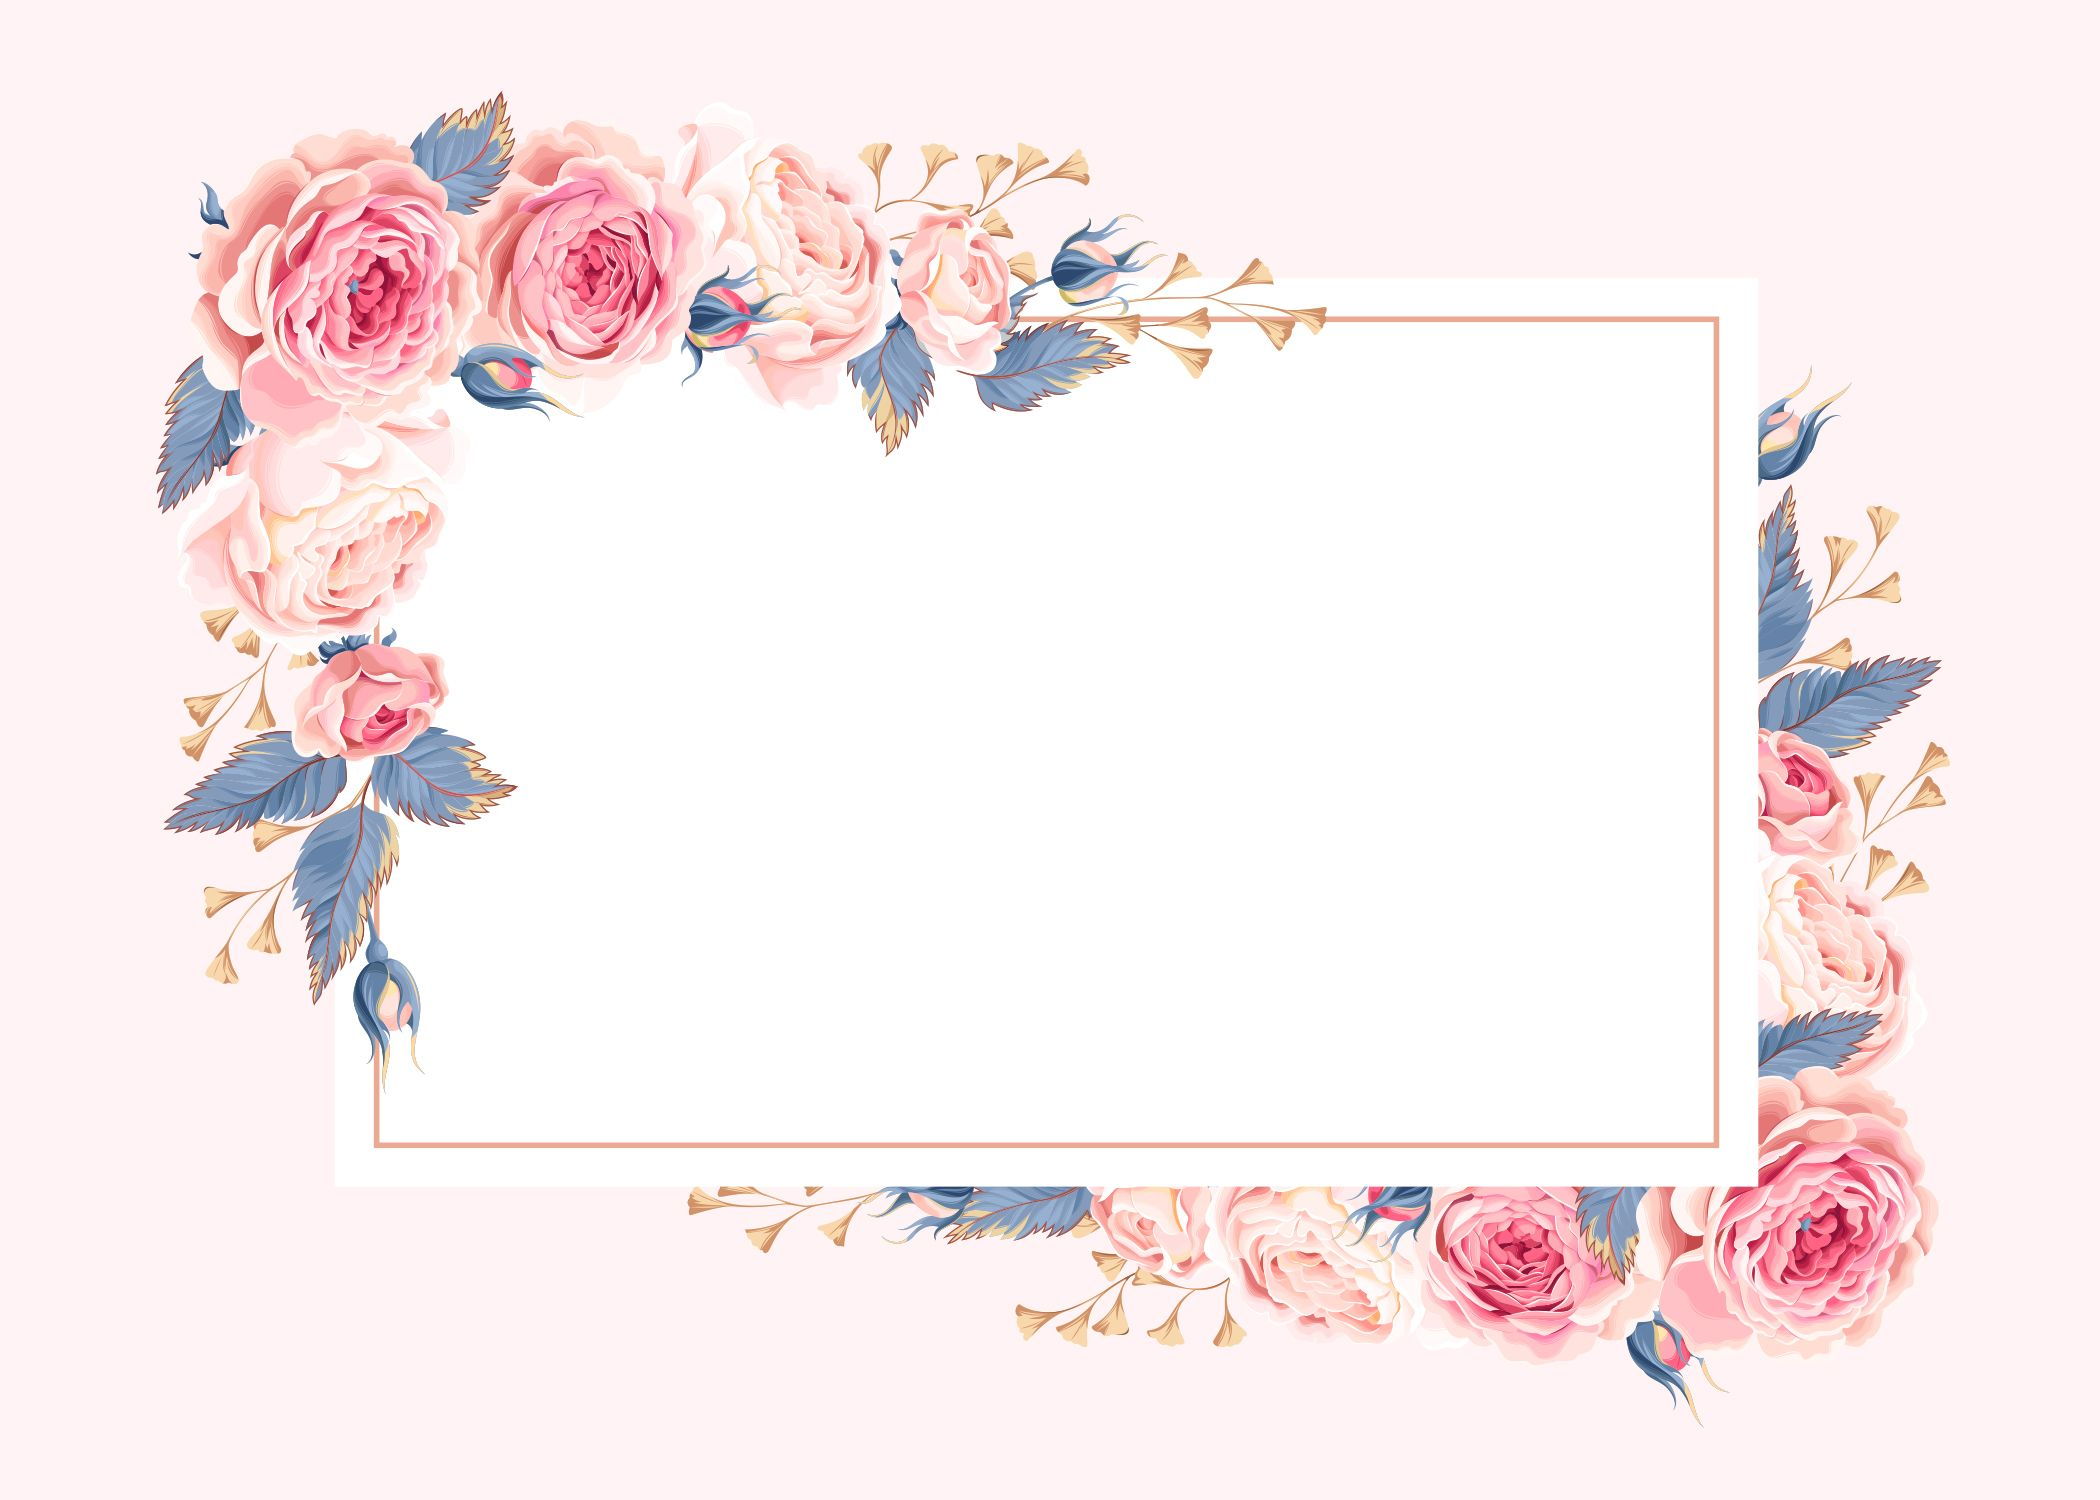 It's just an image of Punchy Printable Greeting Card Template